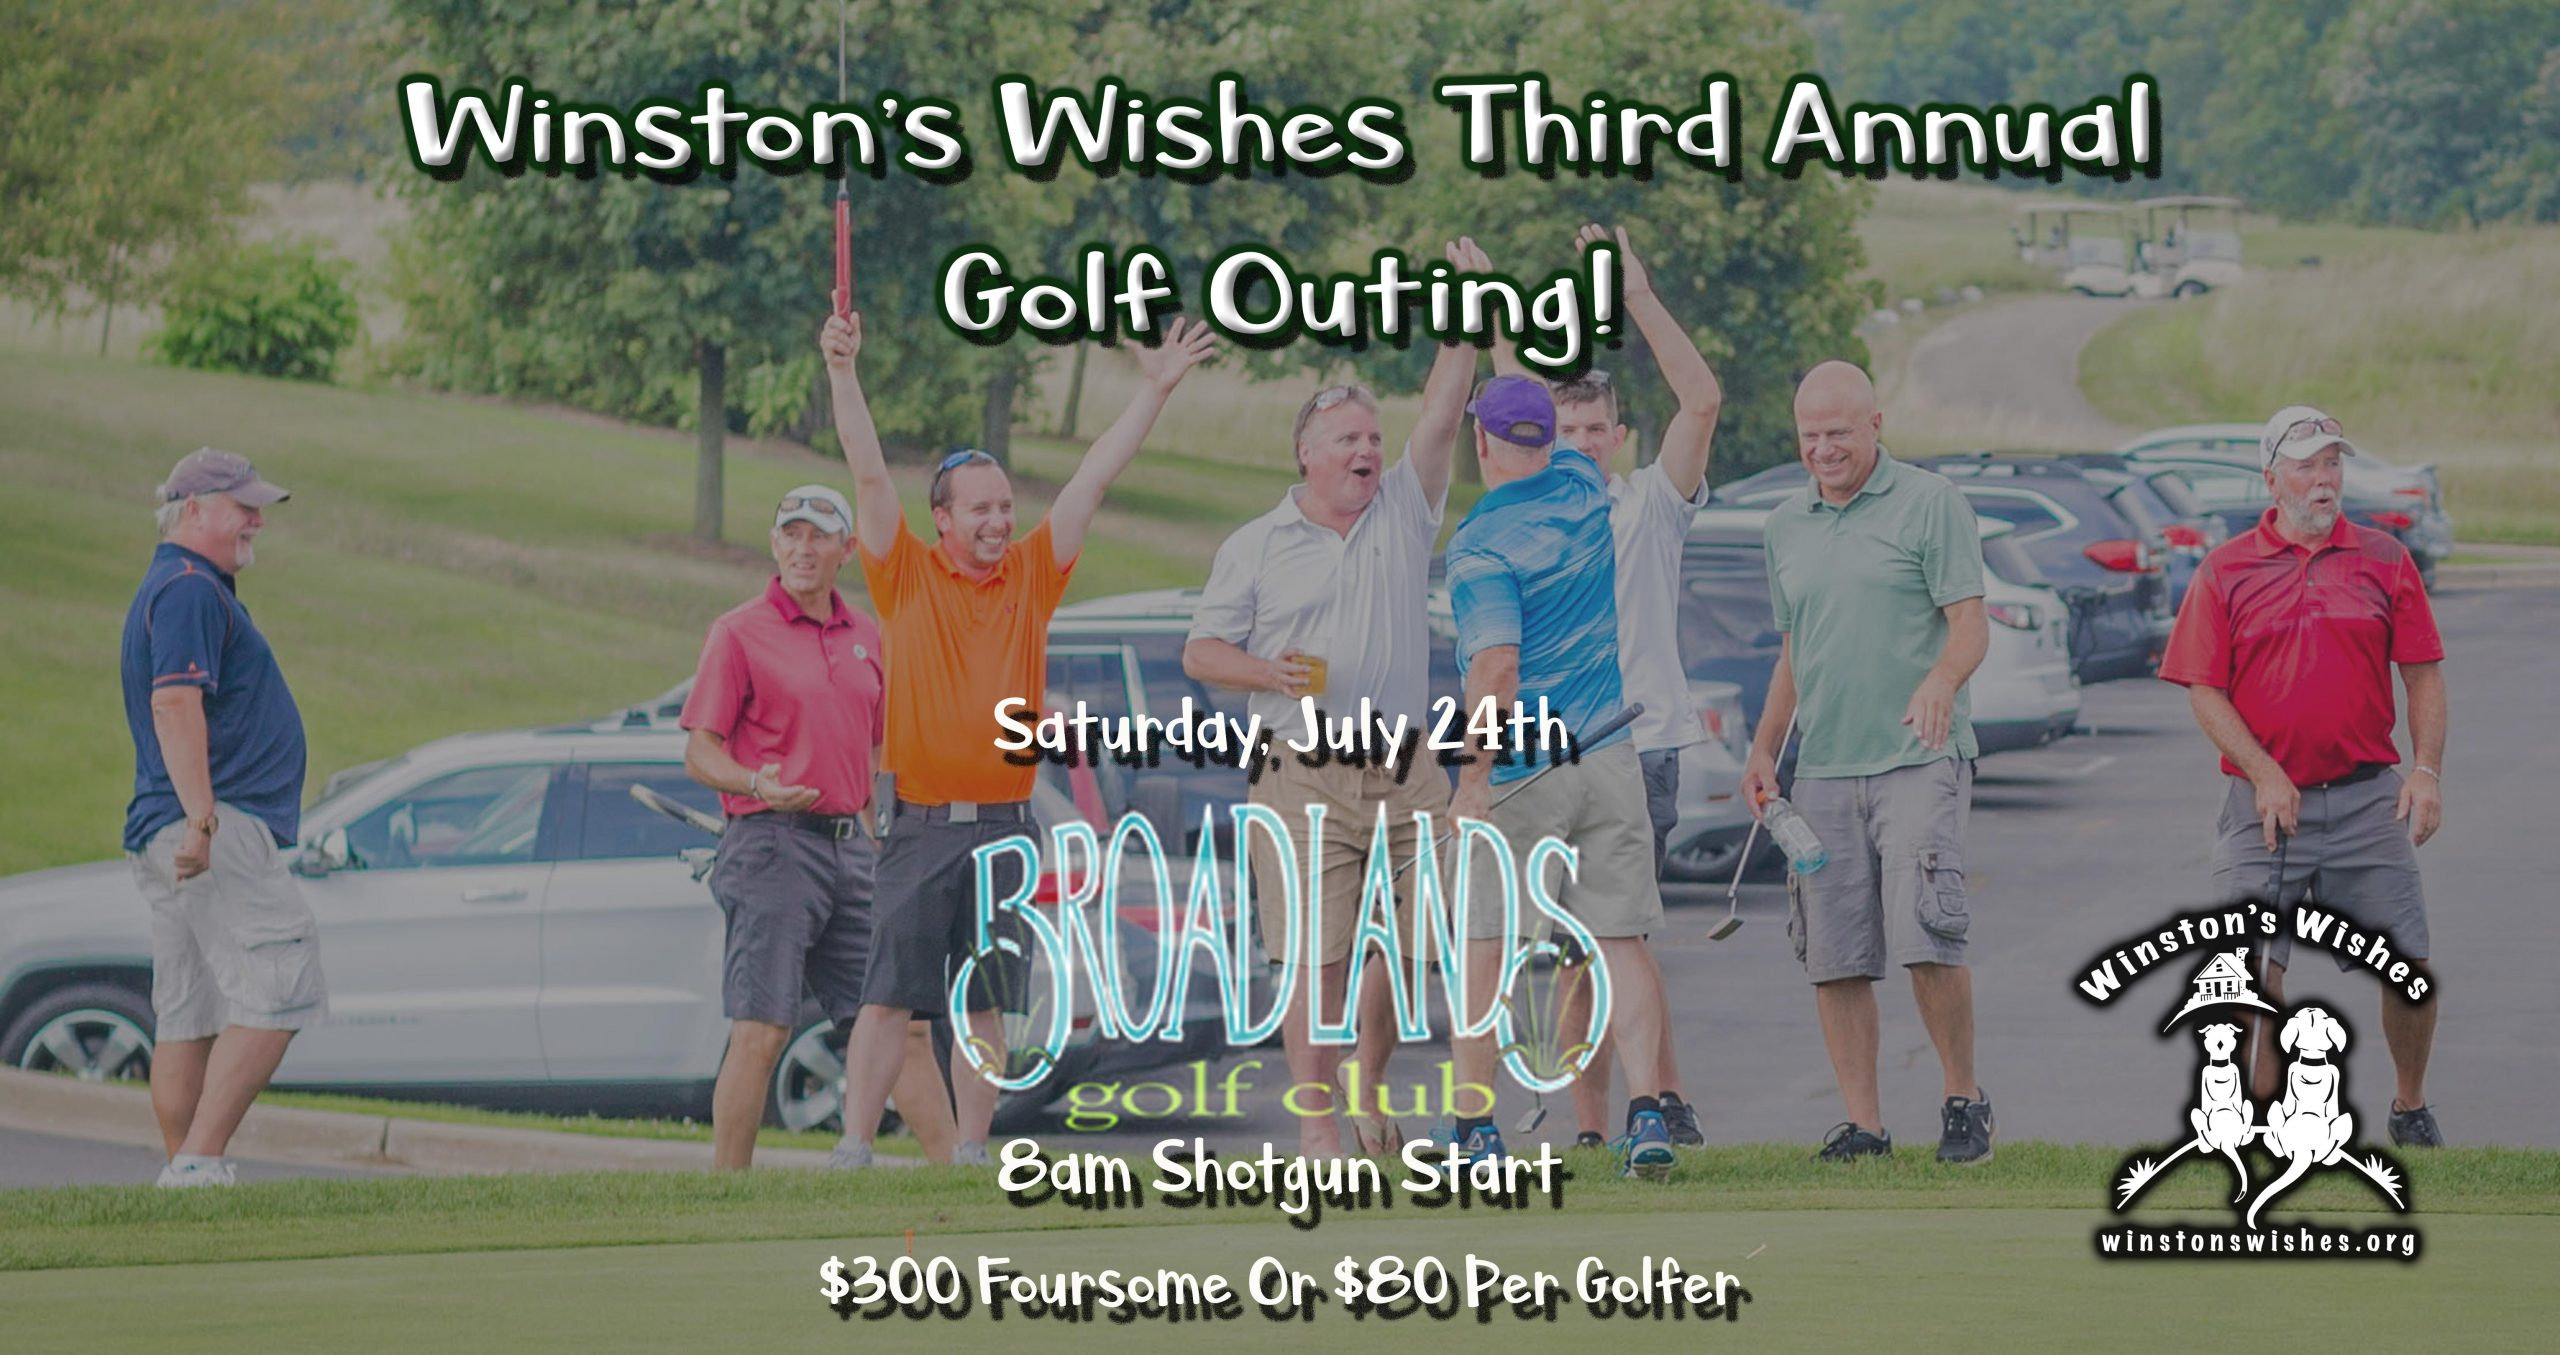 Winston's Wishes Third Annual Golf Outing